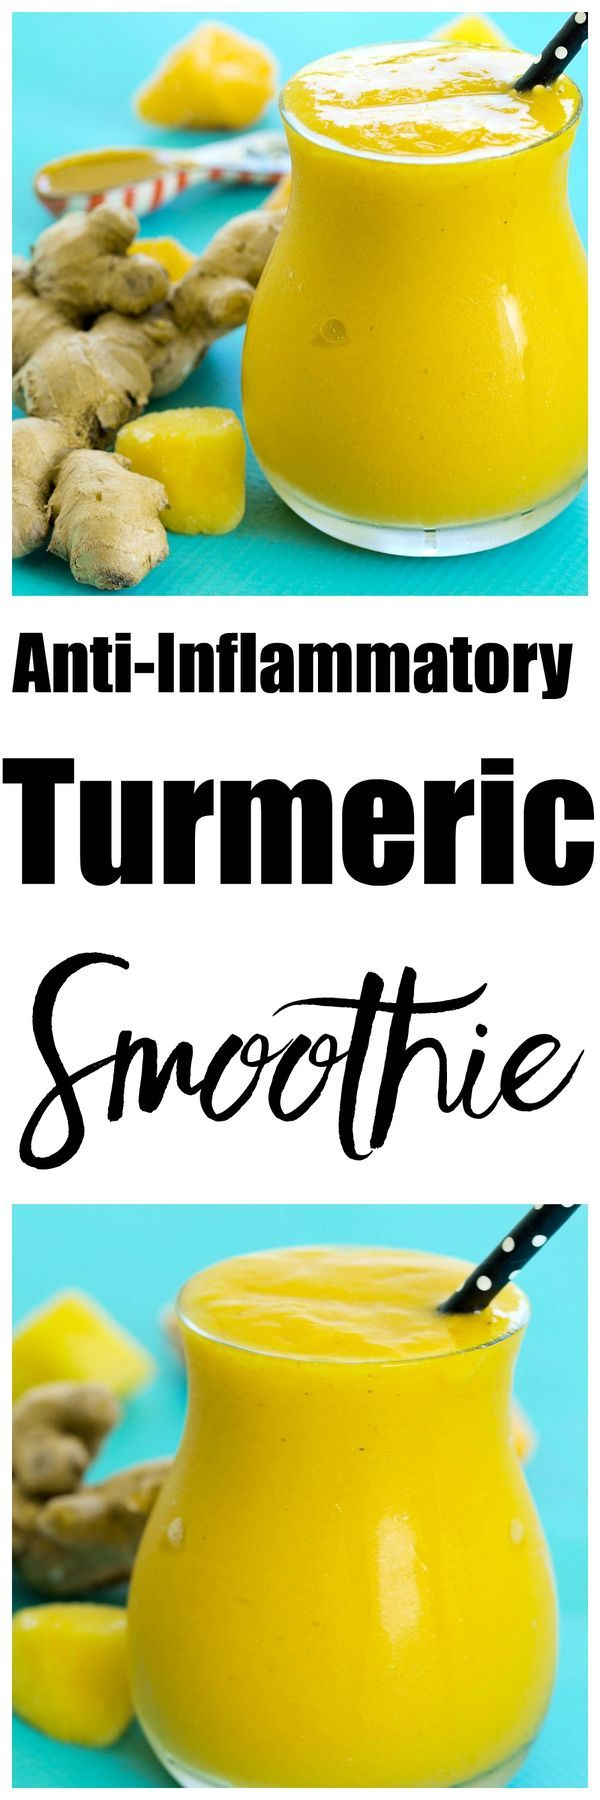 Anti-inflammatory turmeric smoothie recipe. This healthy smoothie recipe is great for breakfast or snack.